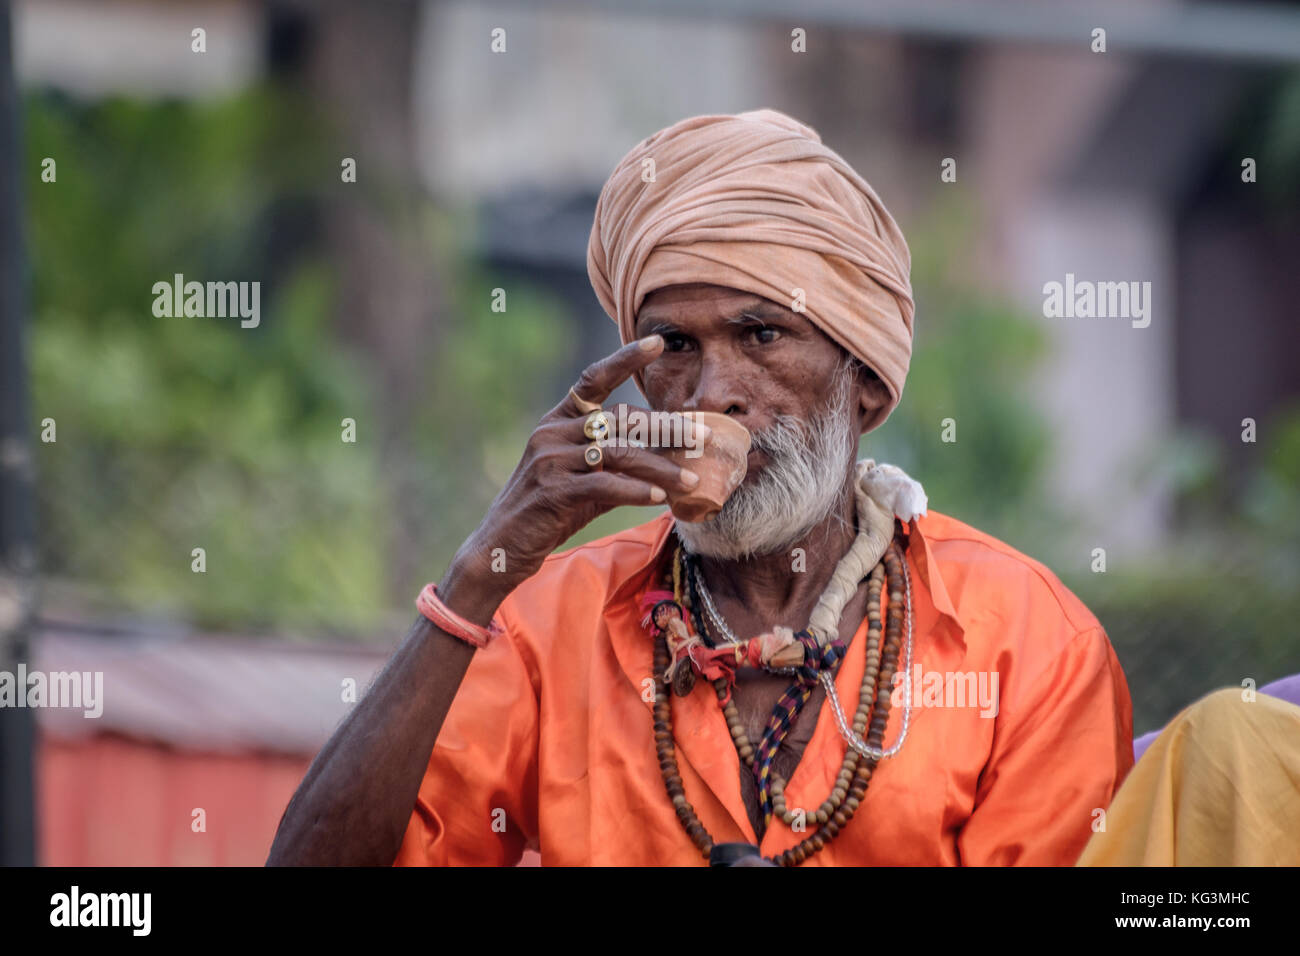 A sadhu baba is drinking tea on a clay pot at Varanasi ghat early in the morning. - Stock Image